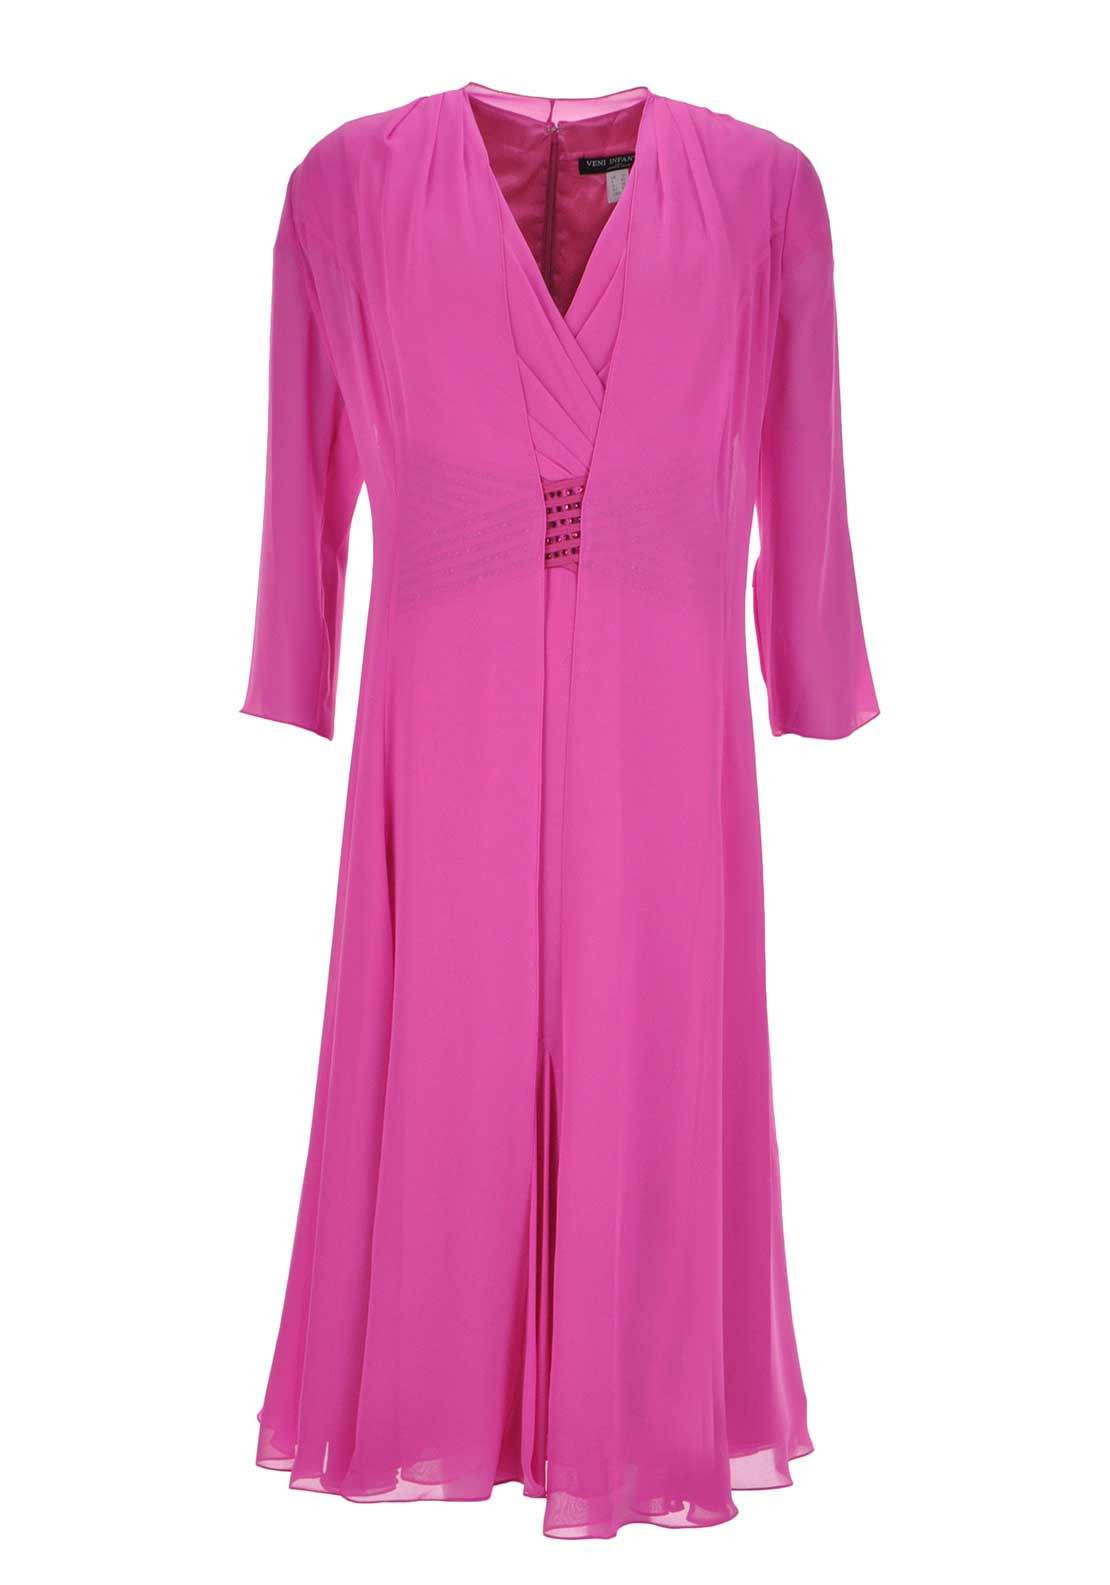 Veni Infantino for Ronald Joyce Chiffon Dress & Coat, Pink